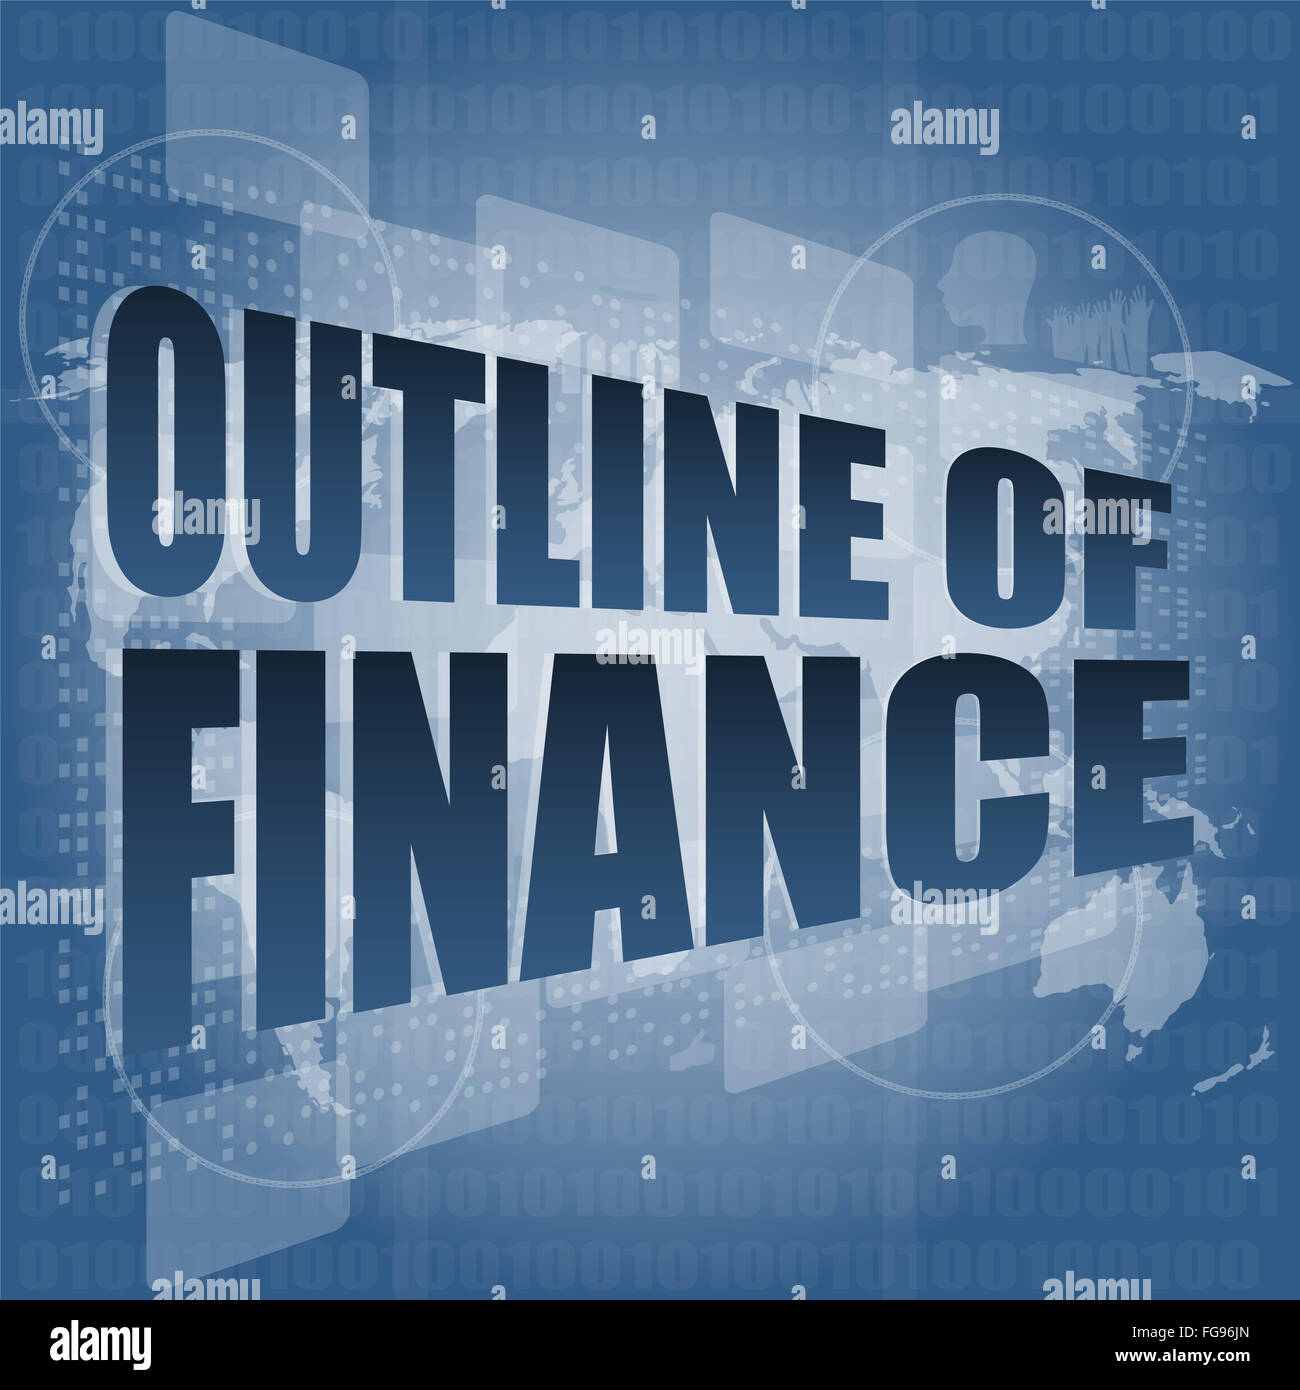 Finance Words: Outline Of Finance Words On Digital Touch Screen Interface